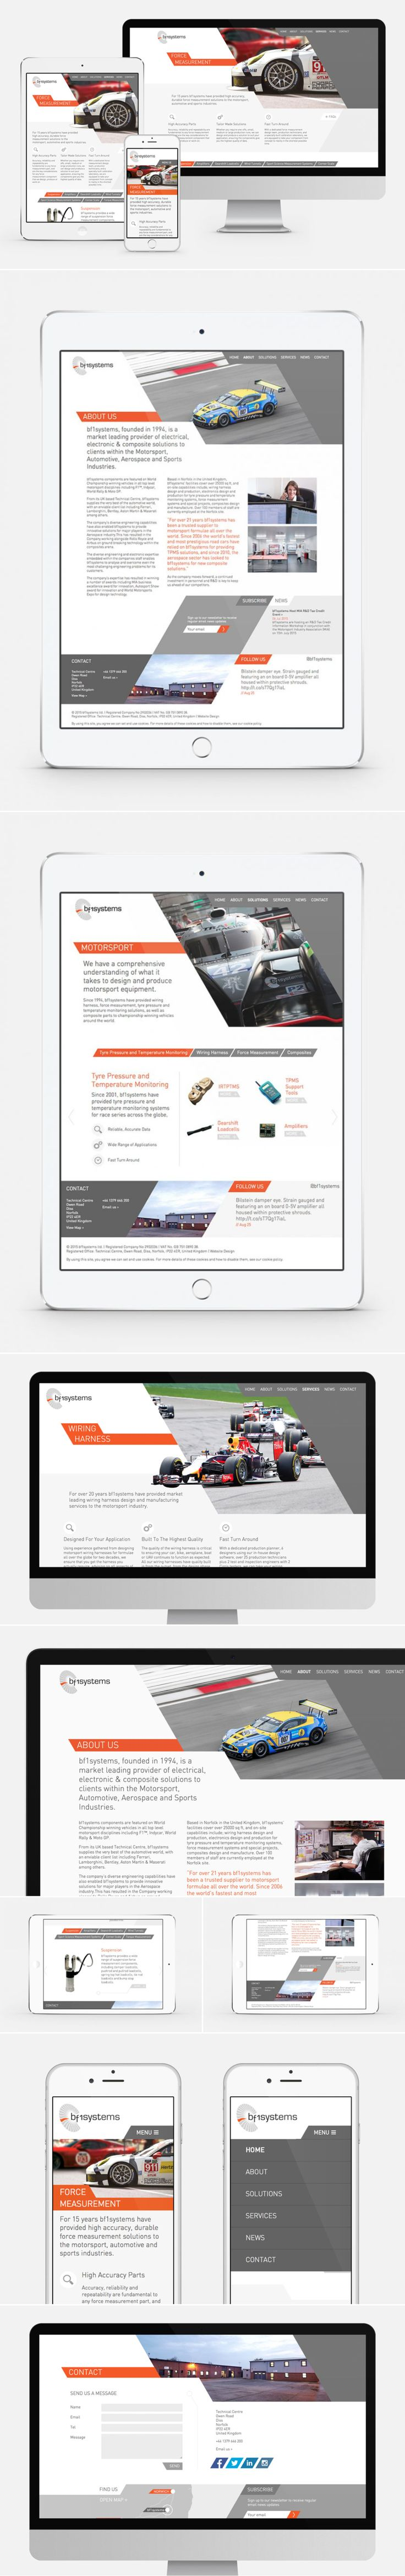 A responsive website designed for bf1systems, a motorsport manufacturer. Featuring bespoke animated slideshows and UI.